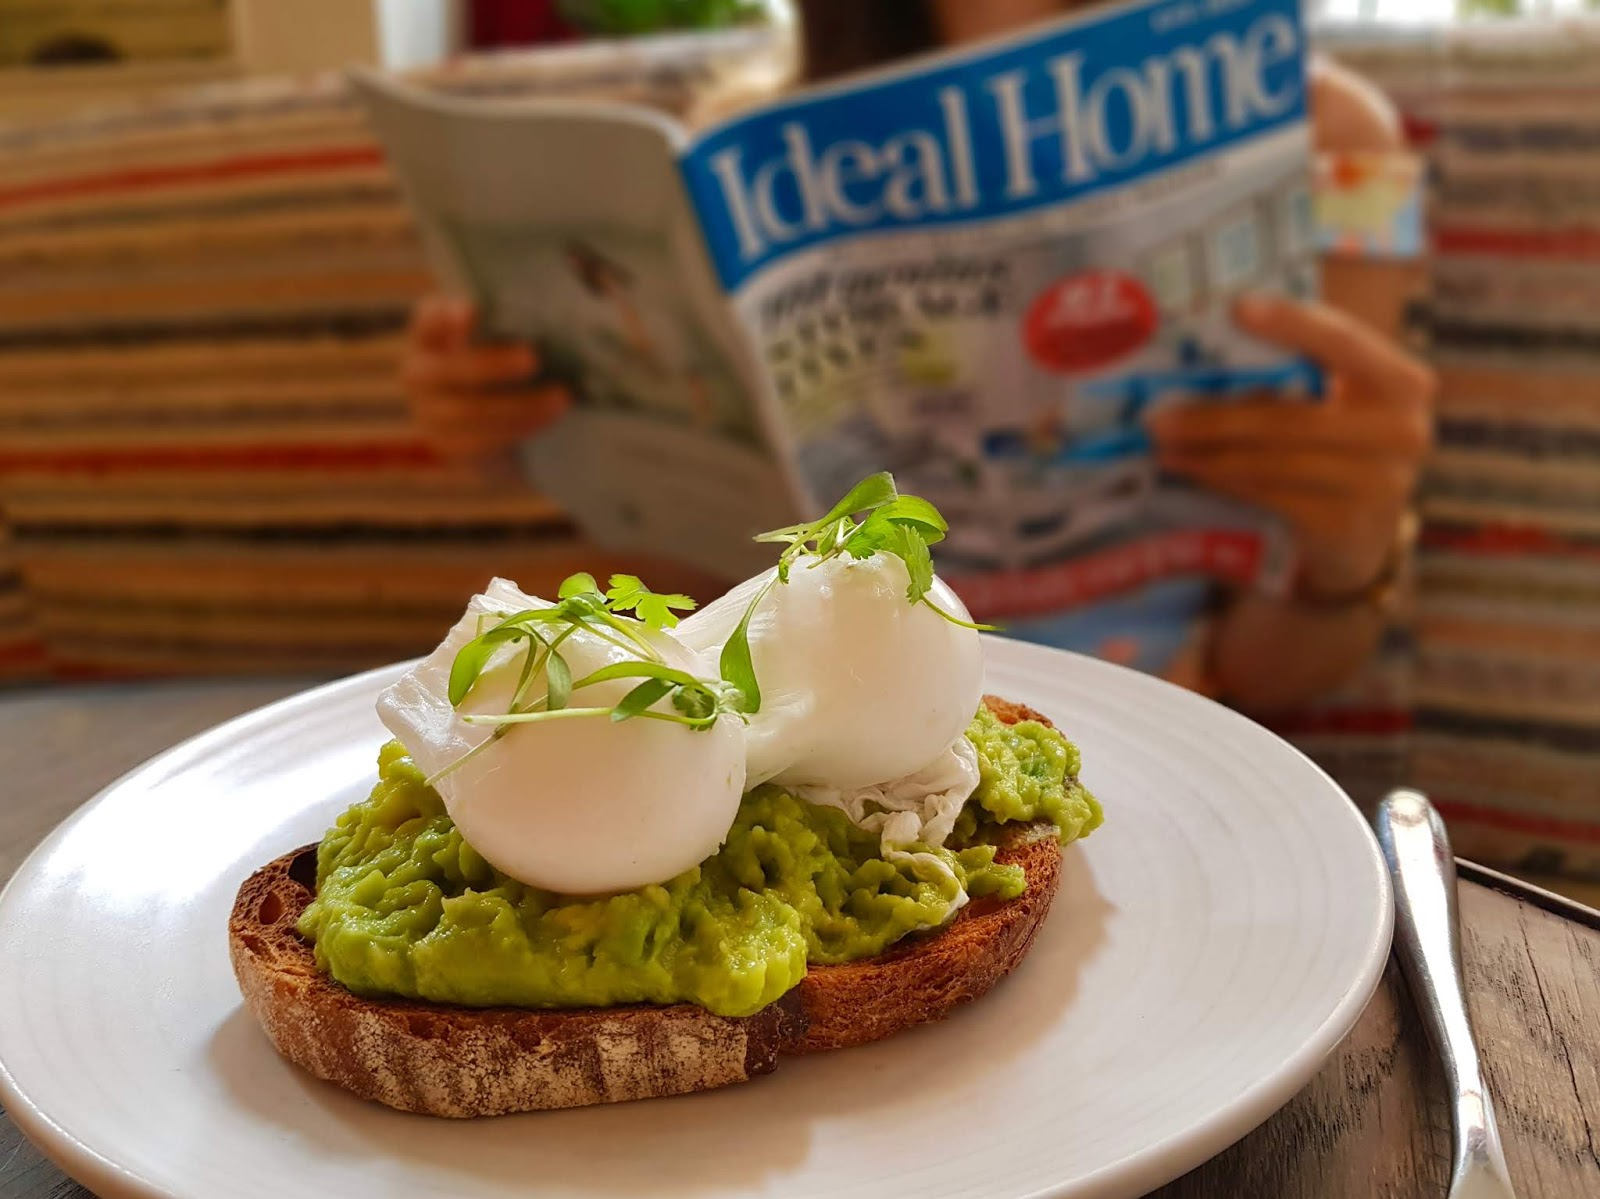 plate of avocado on toast in foreground, young woman reading property magazine in background